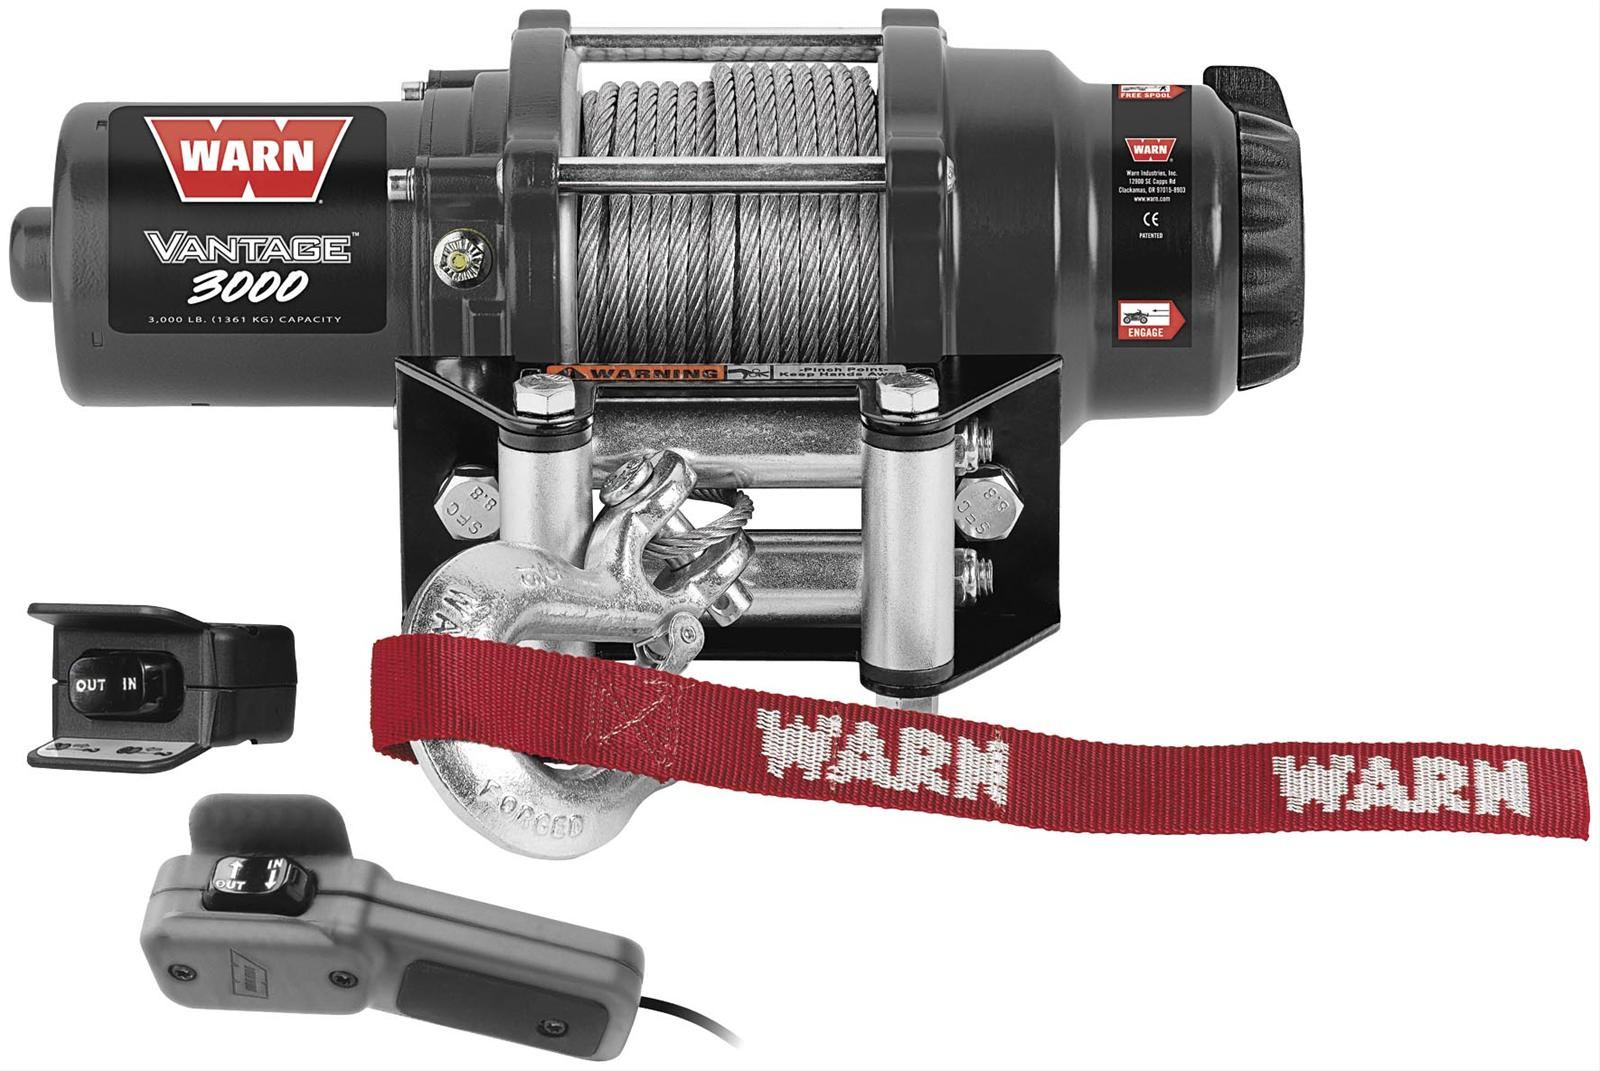 wrn 89030_xl xl 3000 warn winch parts diagram efcaviation com warn vantage 3000 wiring diagram at bayanpartner.co